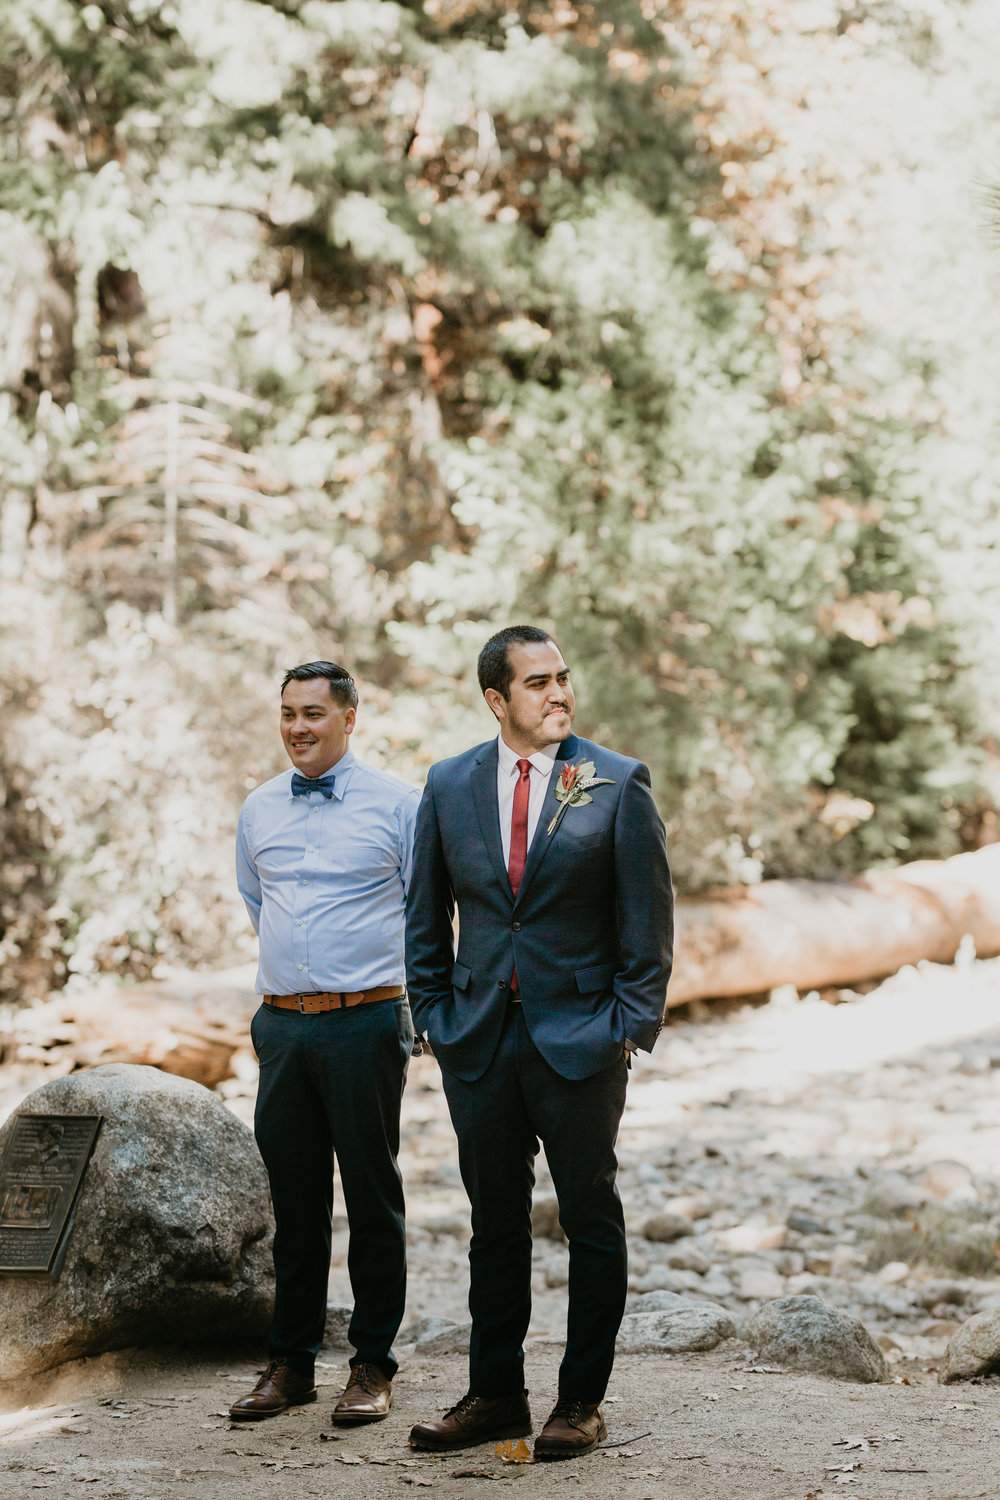 nicole-daacke-photography-intimate-elopement-wedding-yosemite-national-park-california-taft-point-sunset-photos-yosemite-valley-tunnel-view-first-look-sunrise-golden-granite-hiking-adventure-wedding-adventurous-elopement-photographer-40.jpg